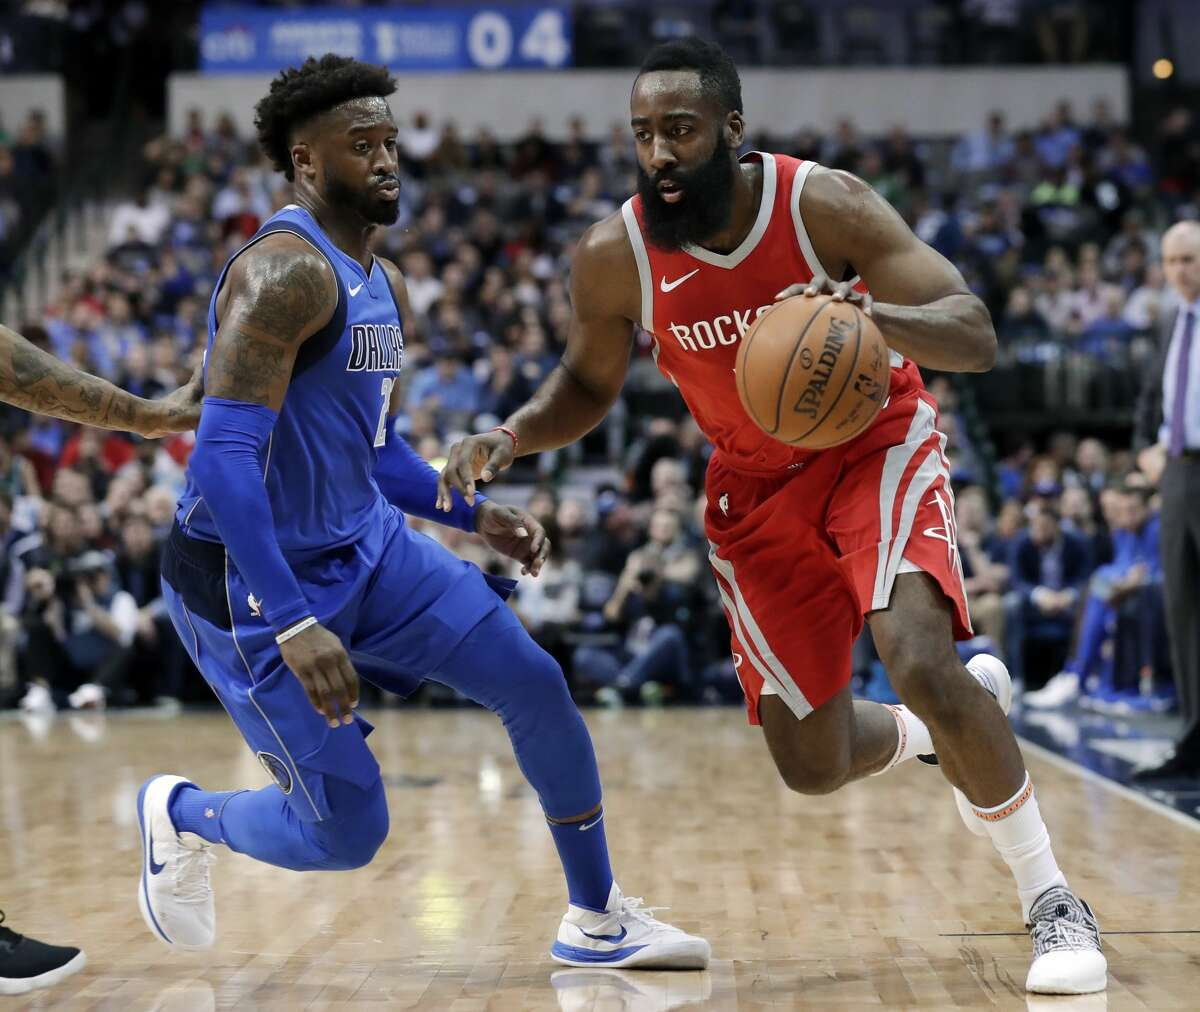 Dallas Mavericks guard Wesley Matthews (23) defends as Houston Rockets guard James Harden, right, advances the ball up court in the first half of an NBA basketball game Wednesday, Jan. 24, 2018, in Dallas. (AP Photo/Tony Gutierrez)